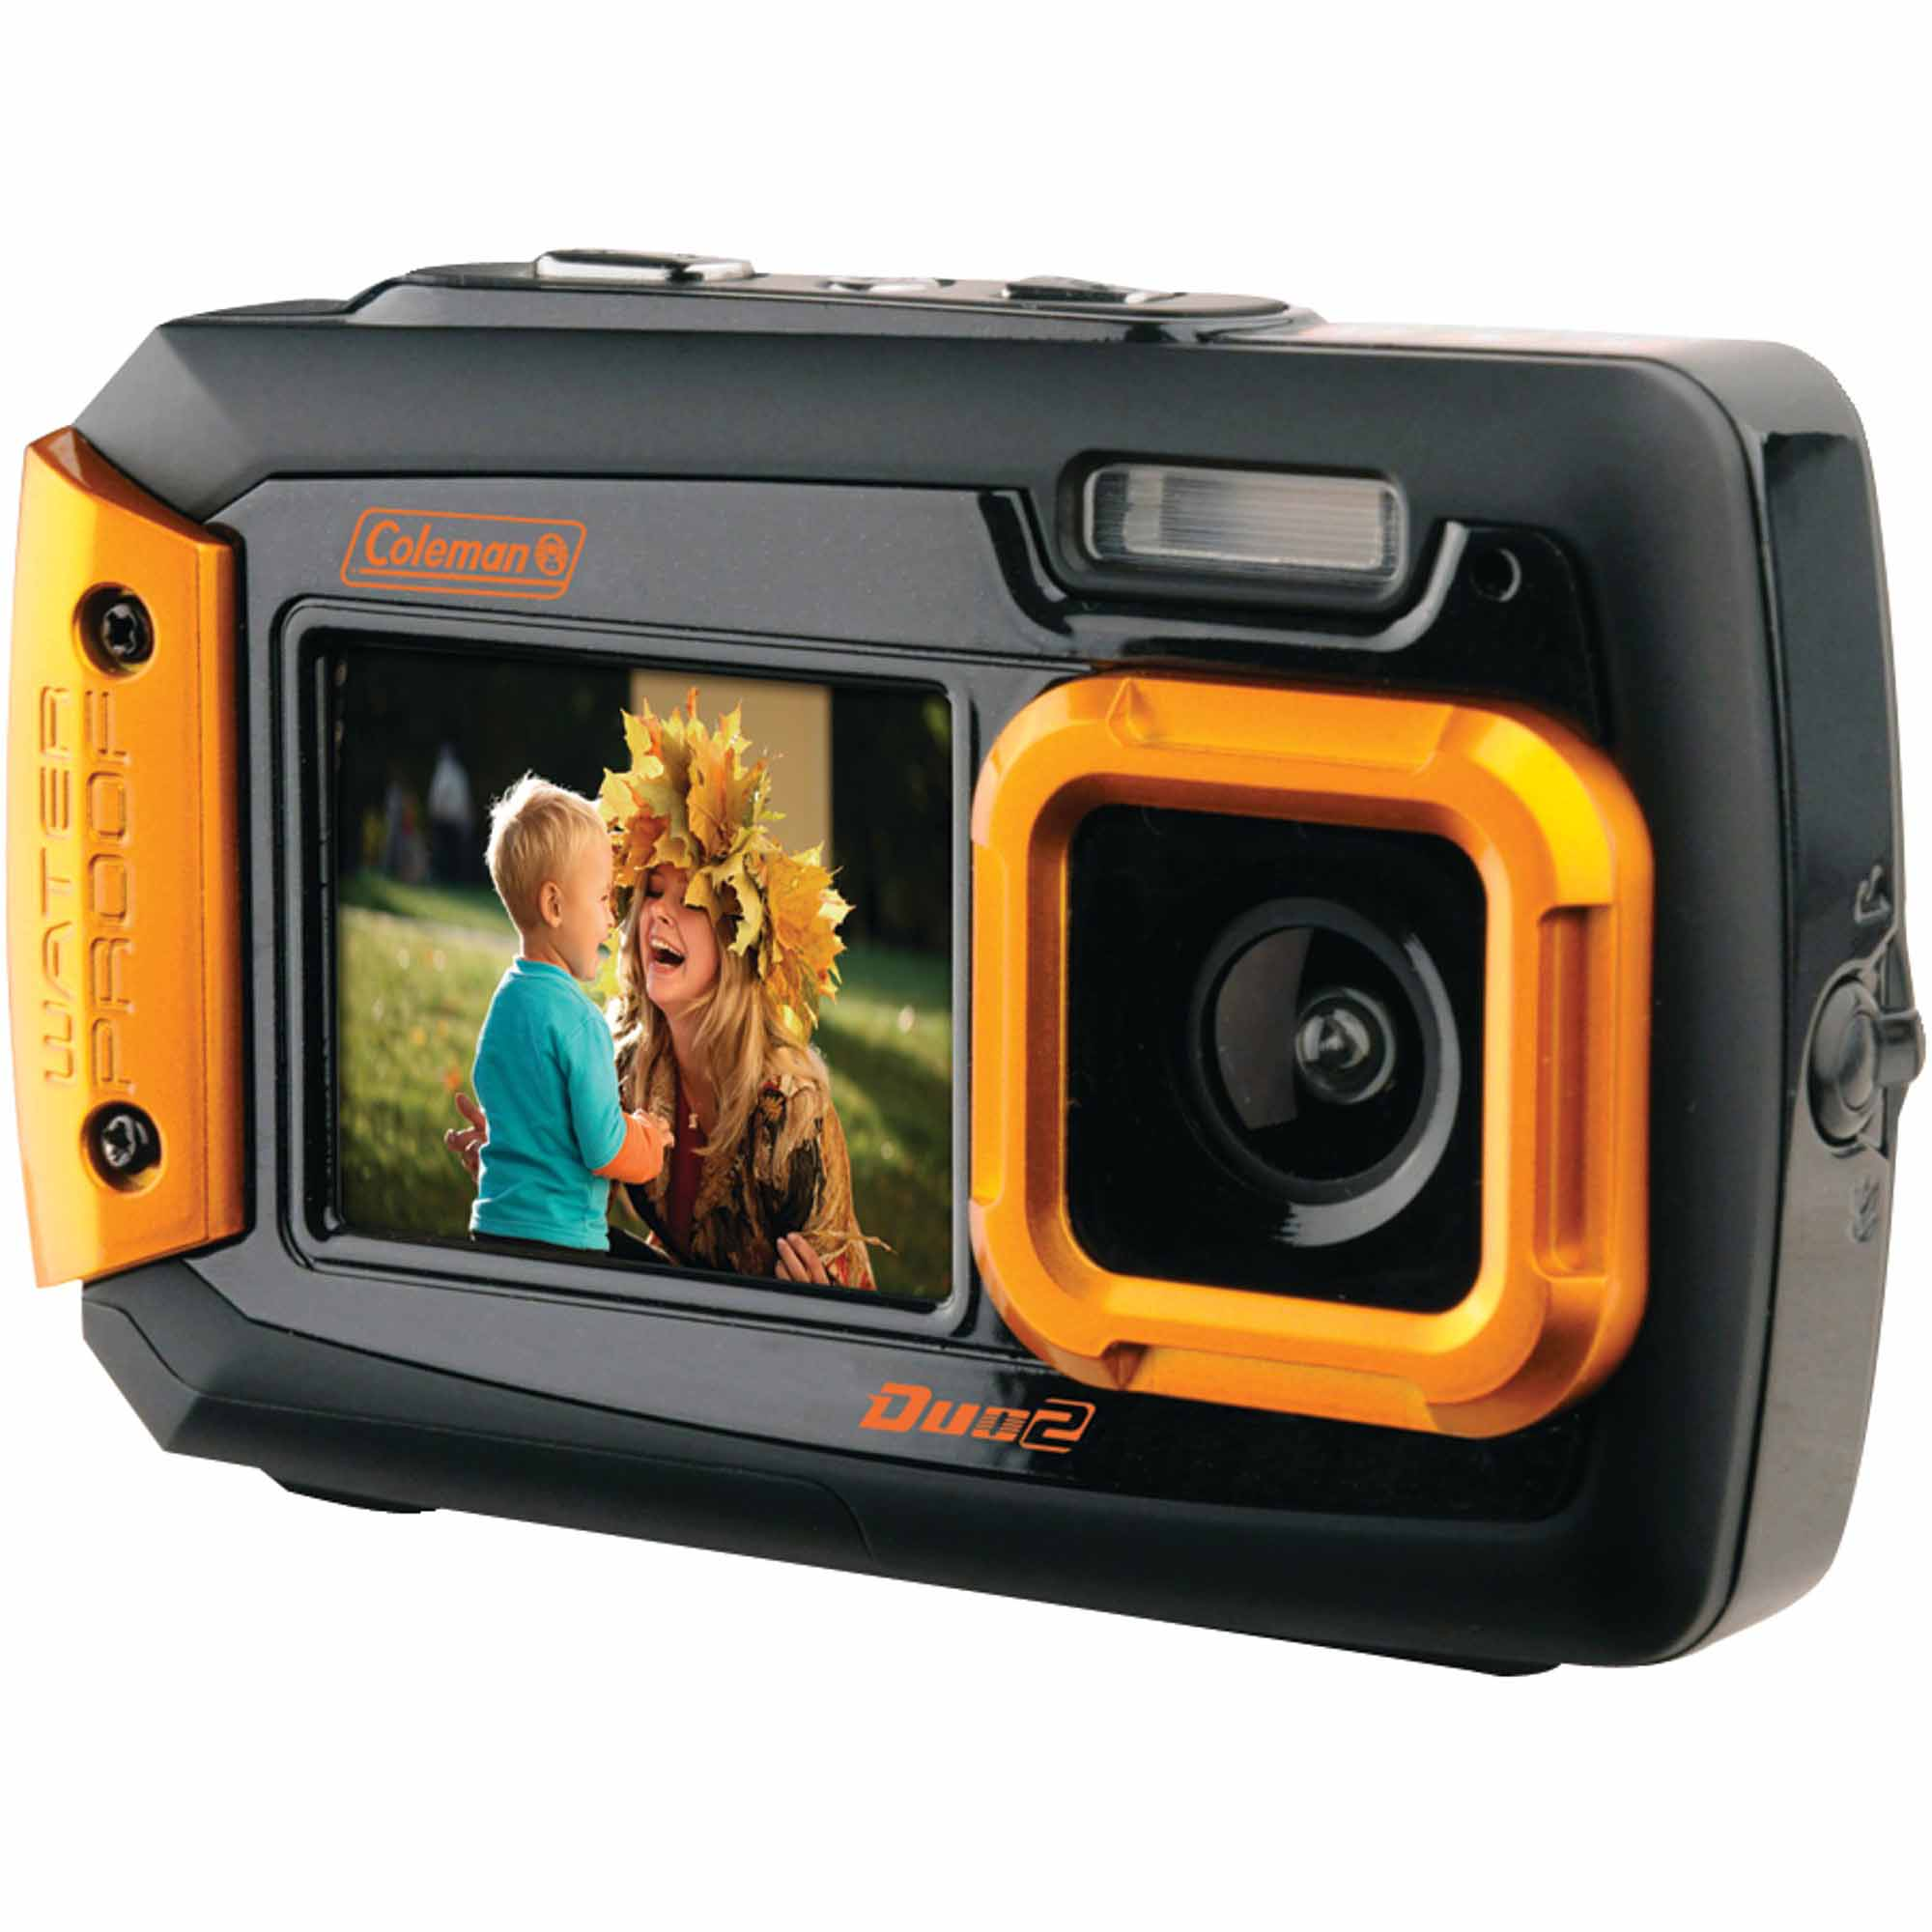 Coleman(R) 2V9WP-O 20.0-Megapixel Duo2 Dual-Screen Waterproof Digital Camera (Orange)